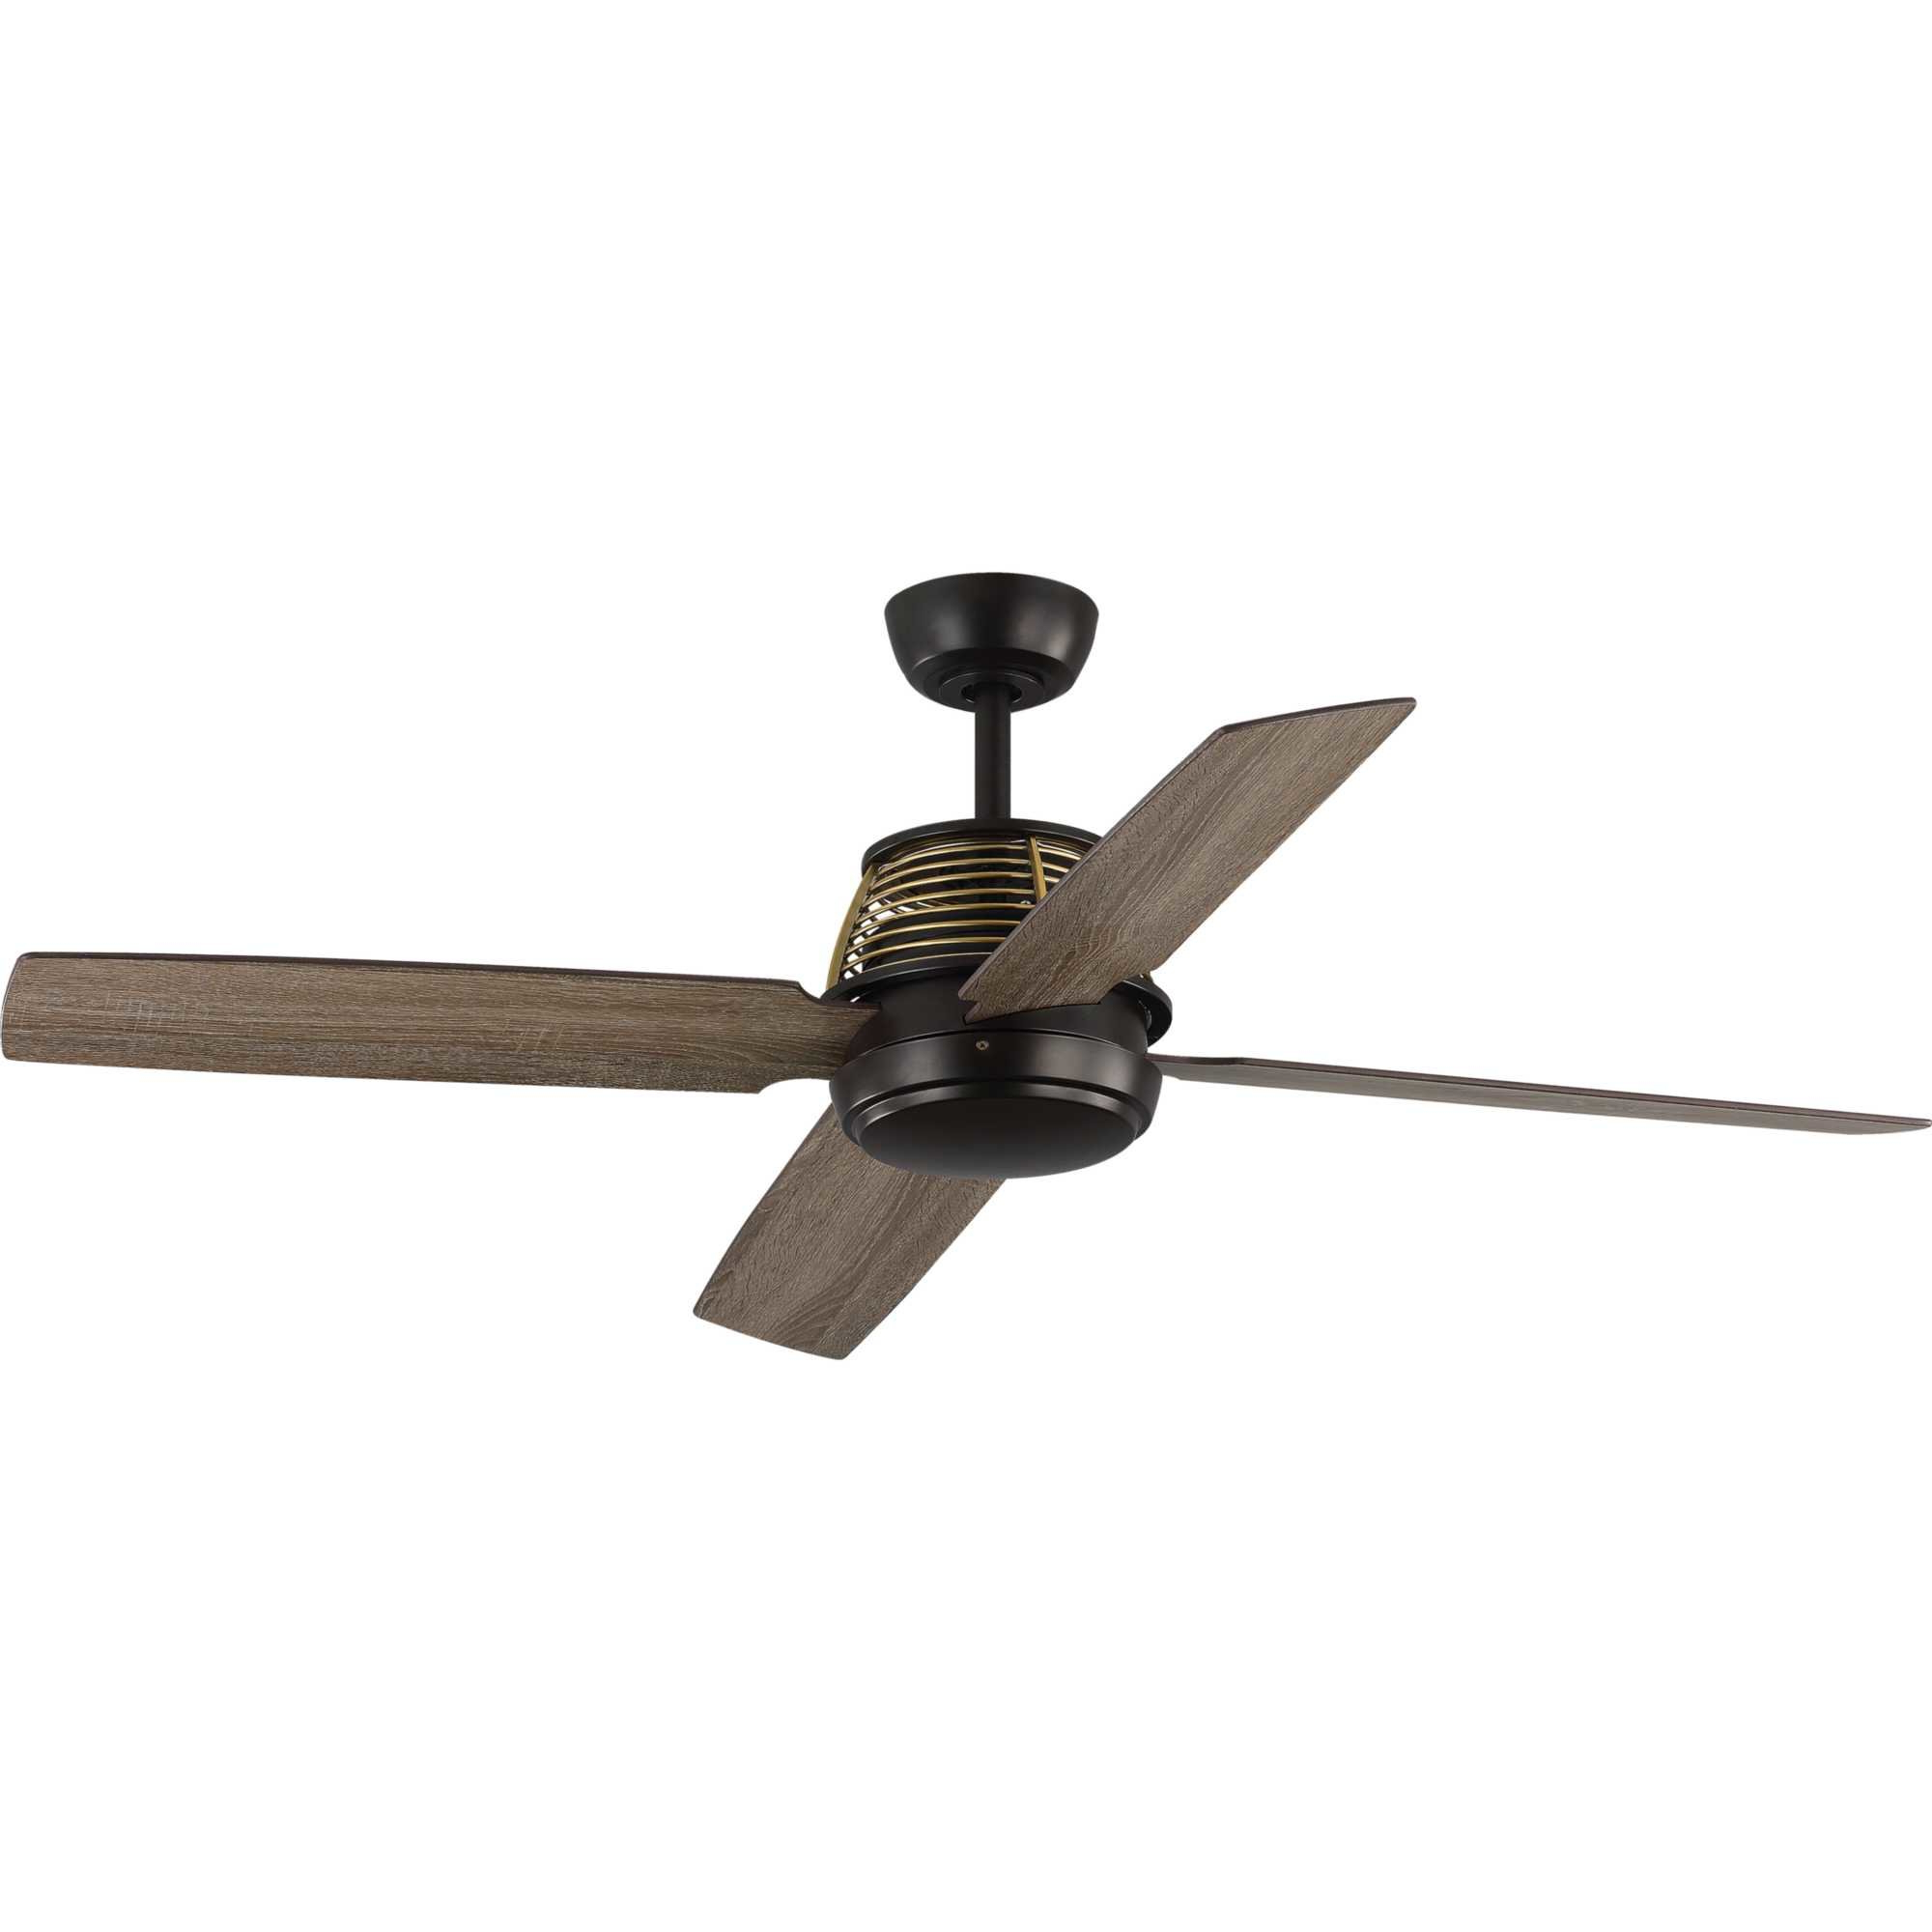 "Martika 4 Blade Ceiling Fans Regarding Well Known 56"" Arine 4 Blade Ceiling Fan With Remote (View 14 of 20)"